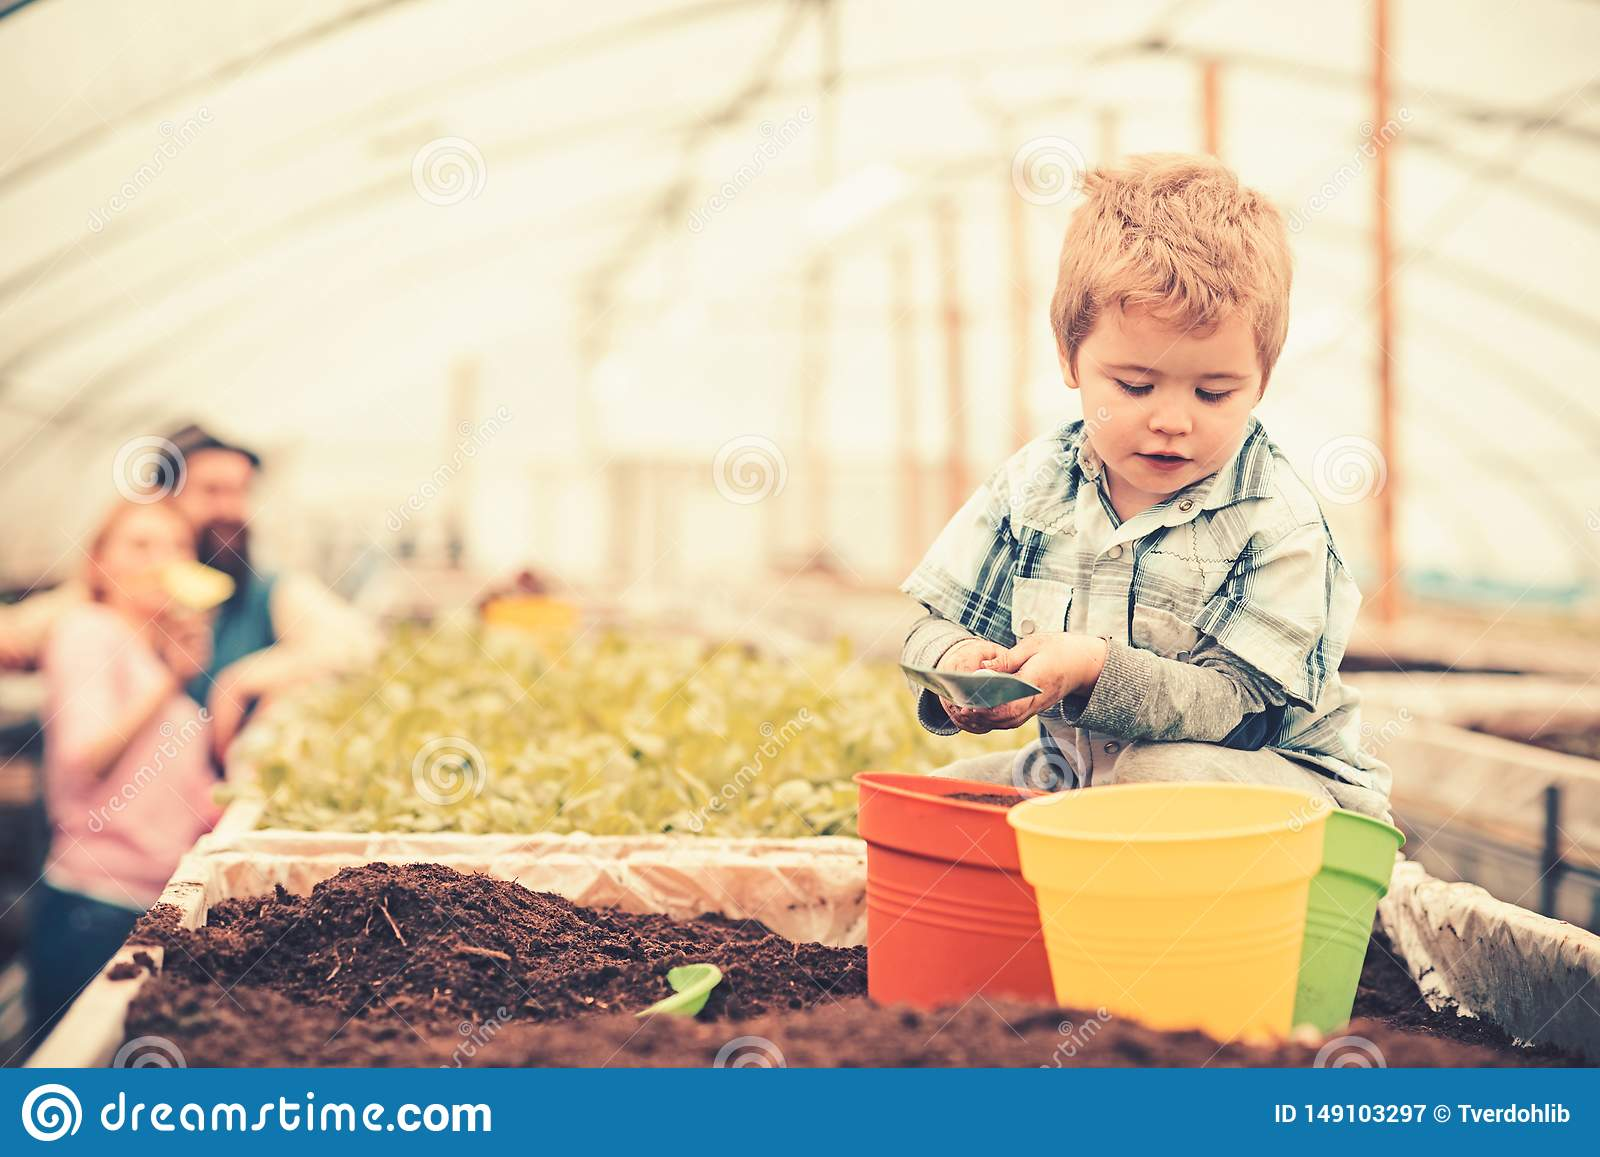 Busy kid filling orange, green and yellow pots with soil. Cute blond boy playing in greenhouse while his parents stand